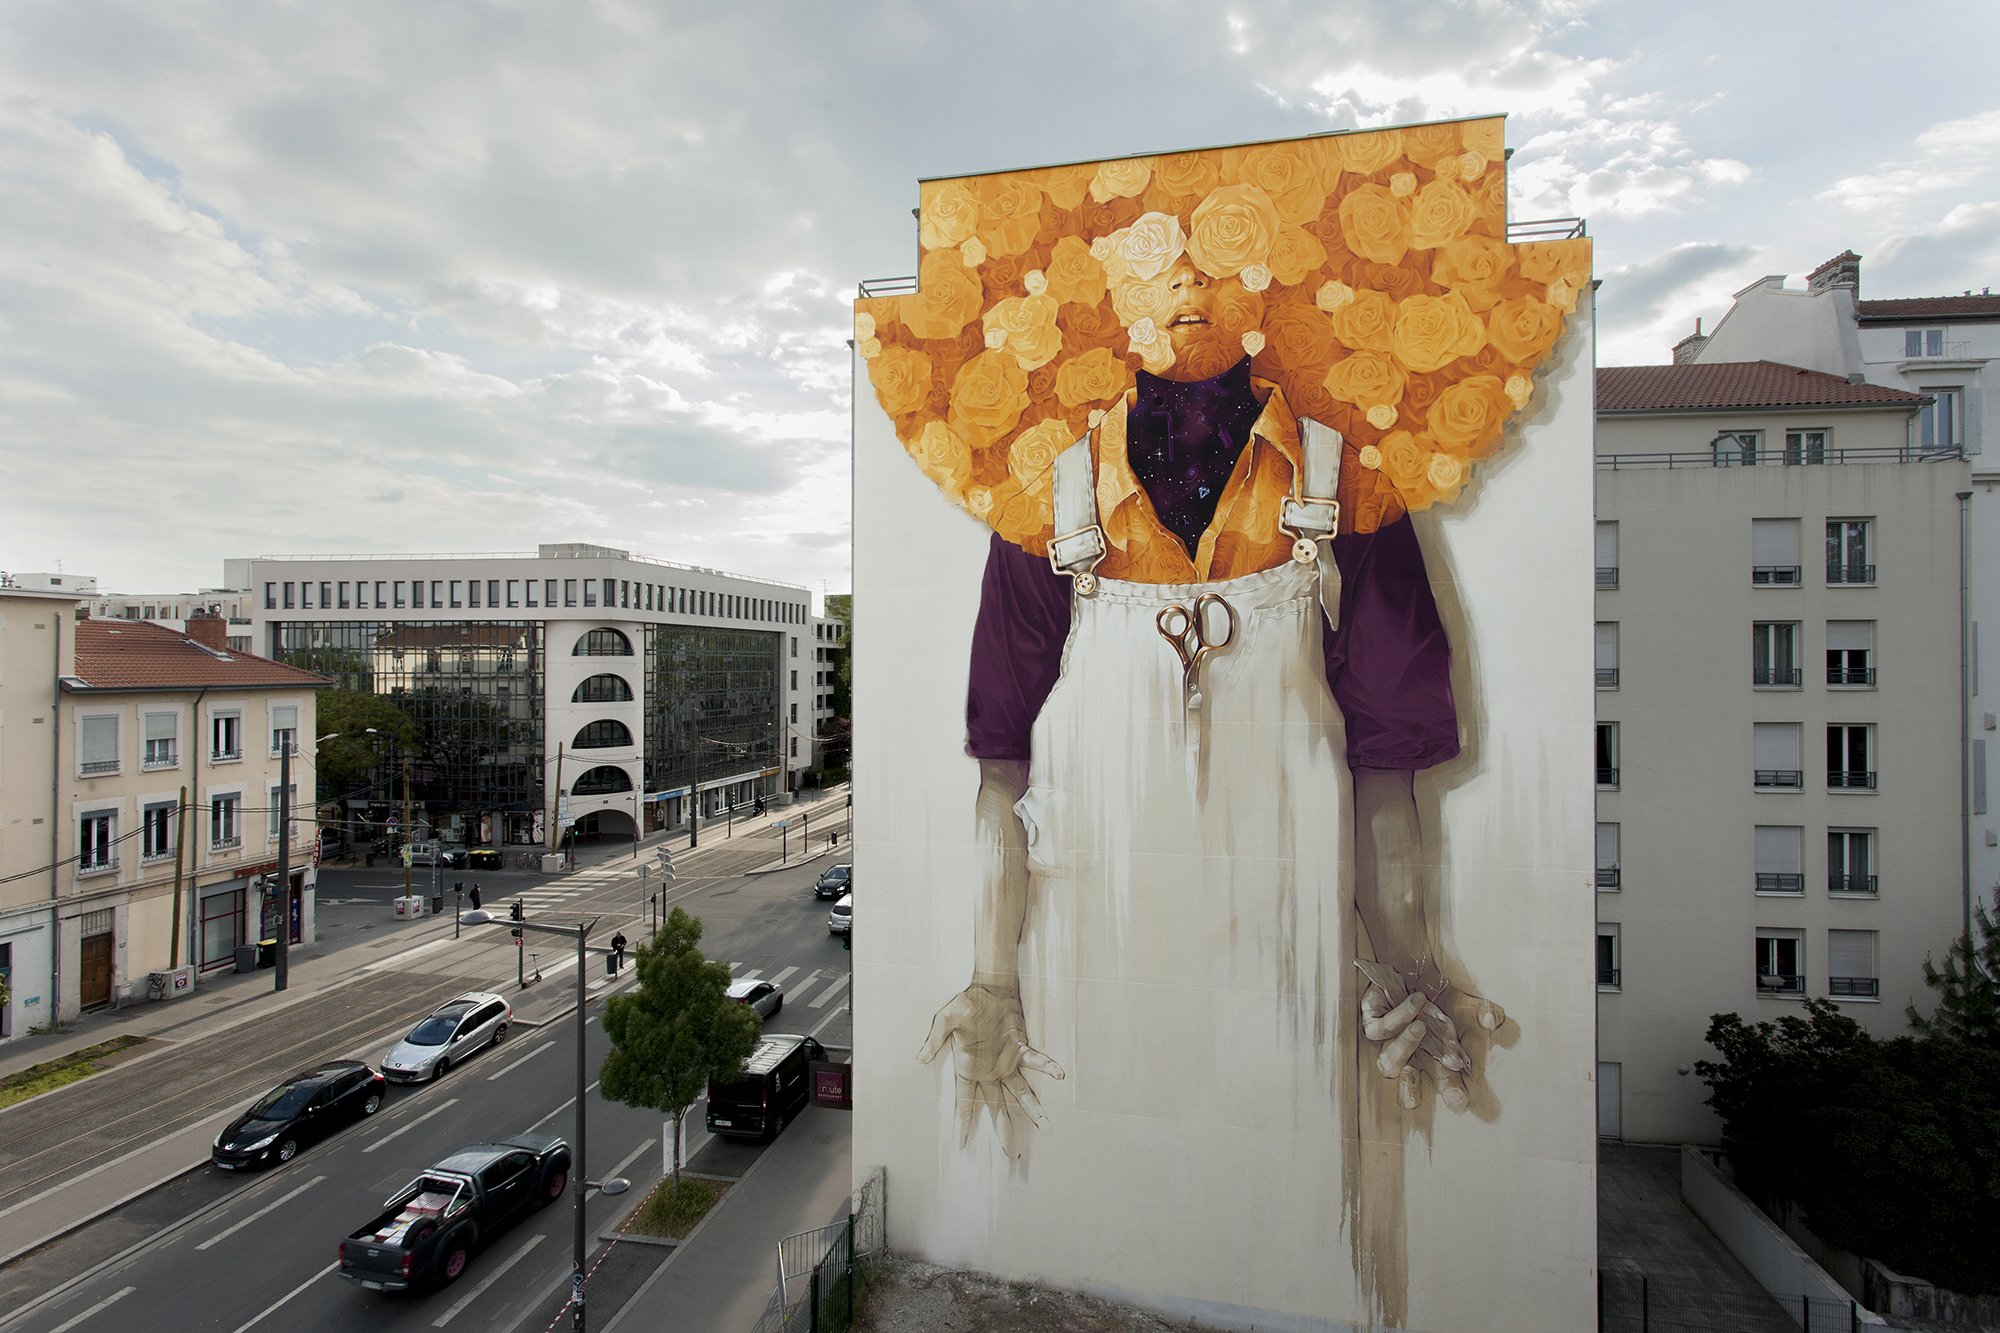 Peintures Mural Radiant Flowers Overlook Lyon France In New Mural By Inti Colossal